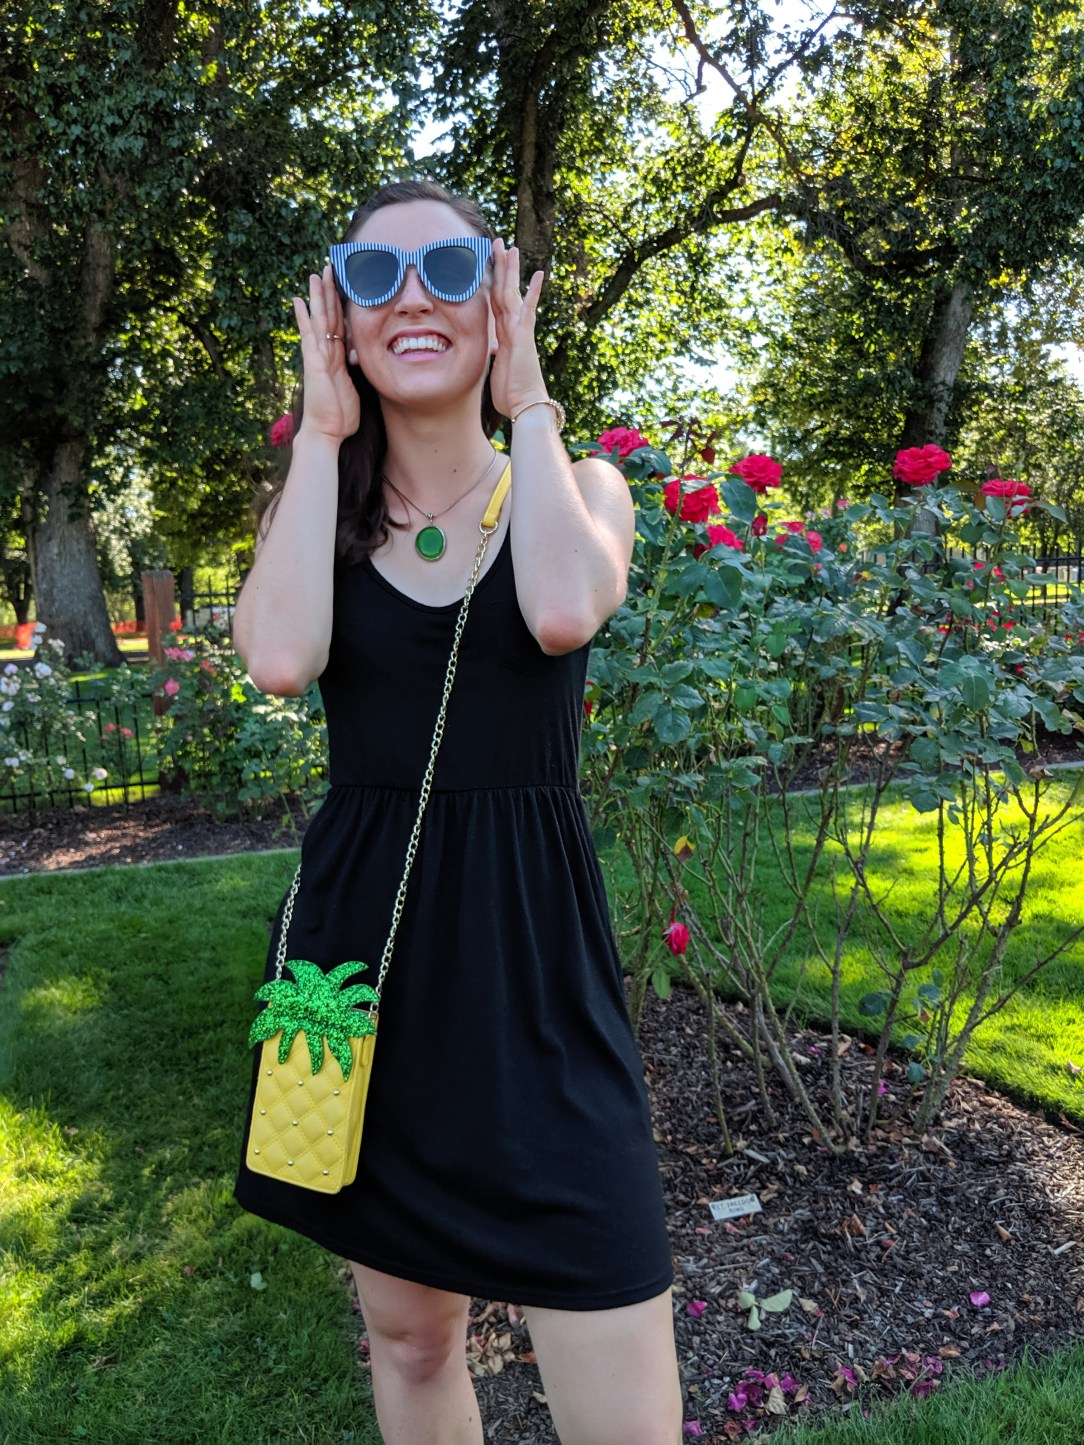 pineapple purse, green necklace, black dress